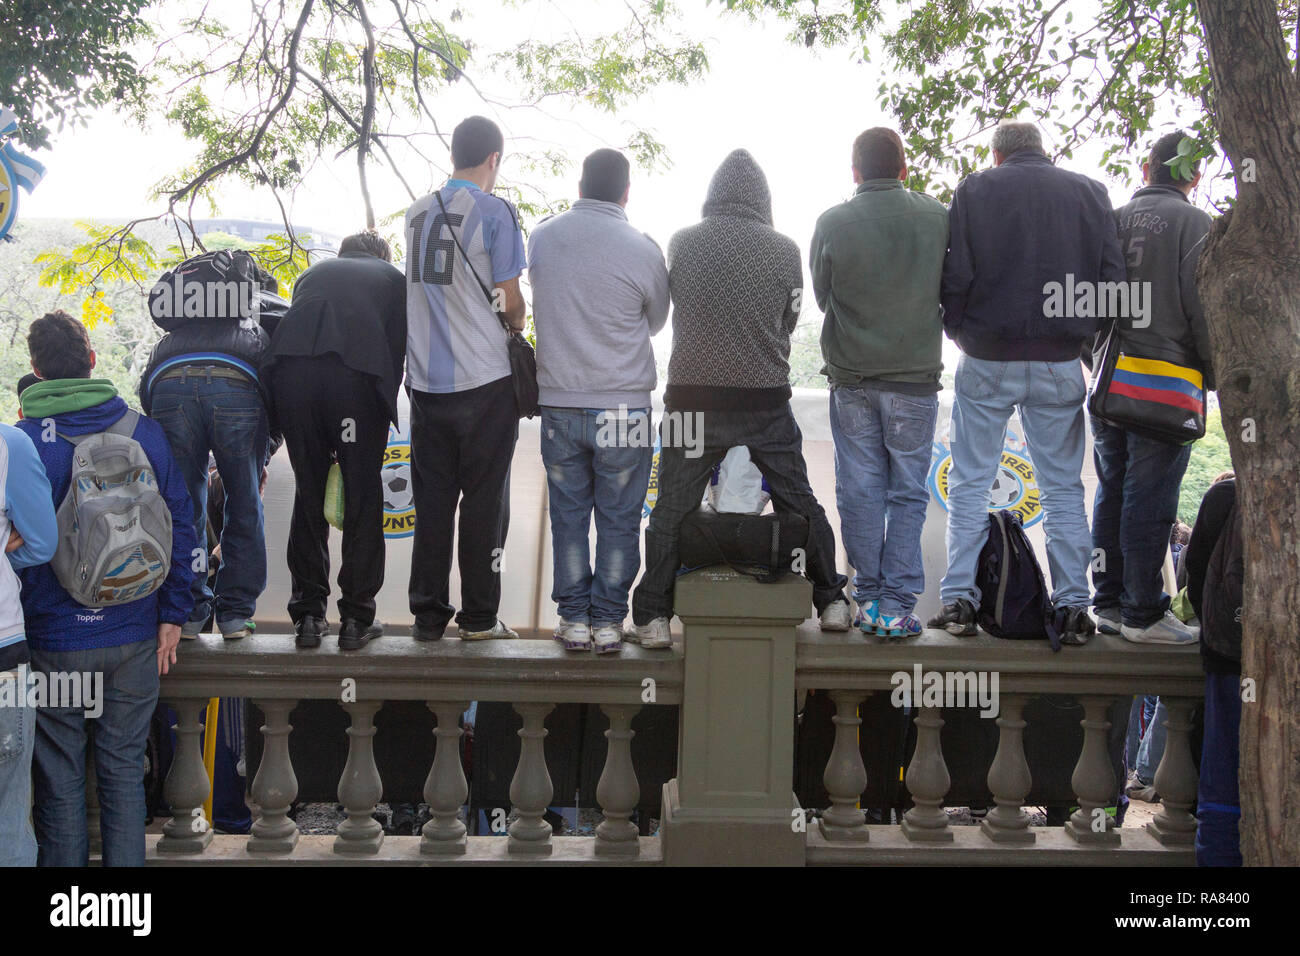 Buenos Aires State/Argentina 25/06/2014. Argentina soccer team fans watching The soccer world cup 2014 Argentina vs Nigeria in Plaza San Martín or San - Stock Image